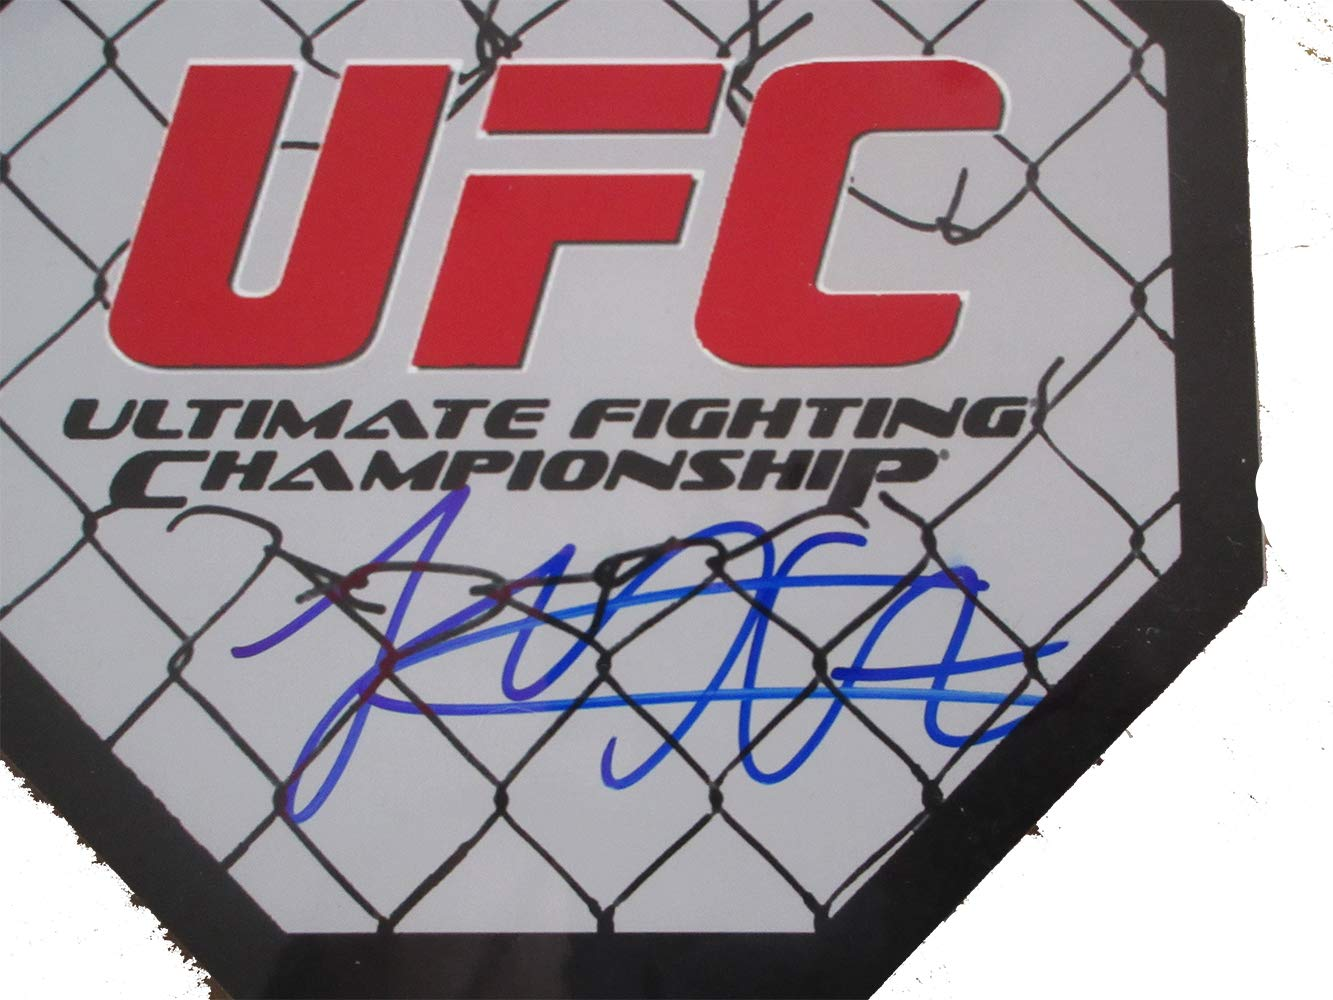 Khabib Nurmagomedov Autographed UFC 8x8 UFC Octagon W/PROOF, Picture of Khabib Signing For Us, Ultimate Fighting Championship, UFC, Sherdog, 26 0, Undefeated, Conor McGregor